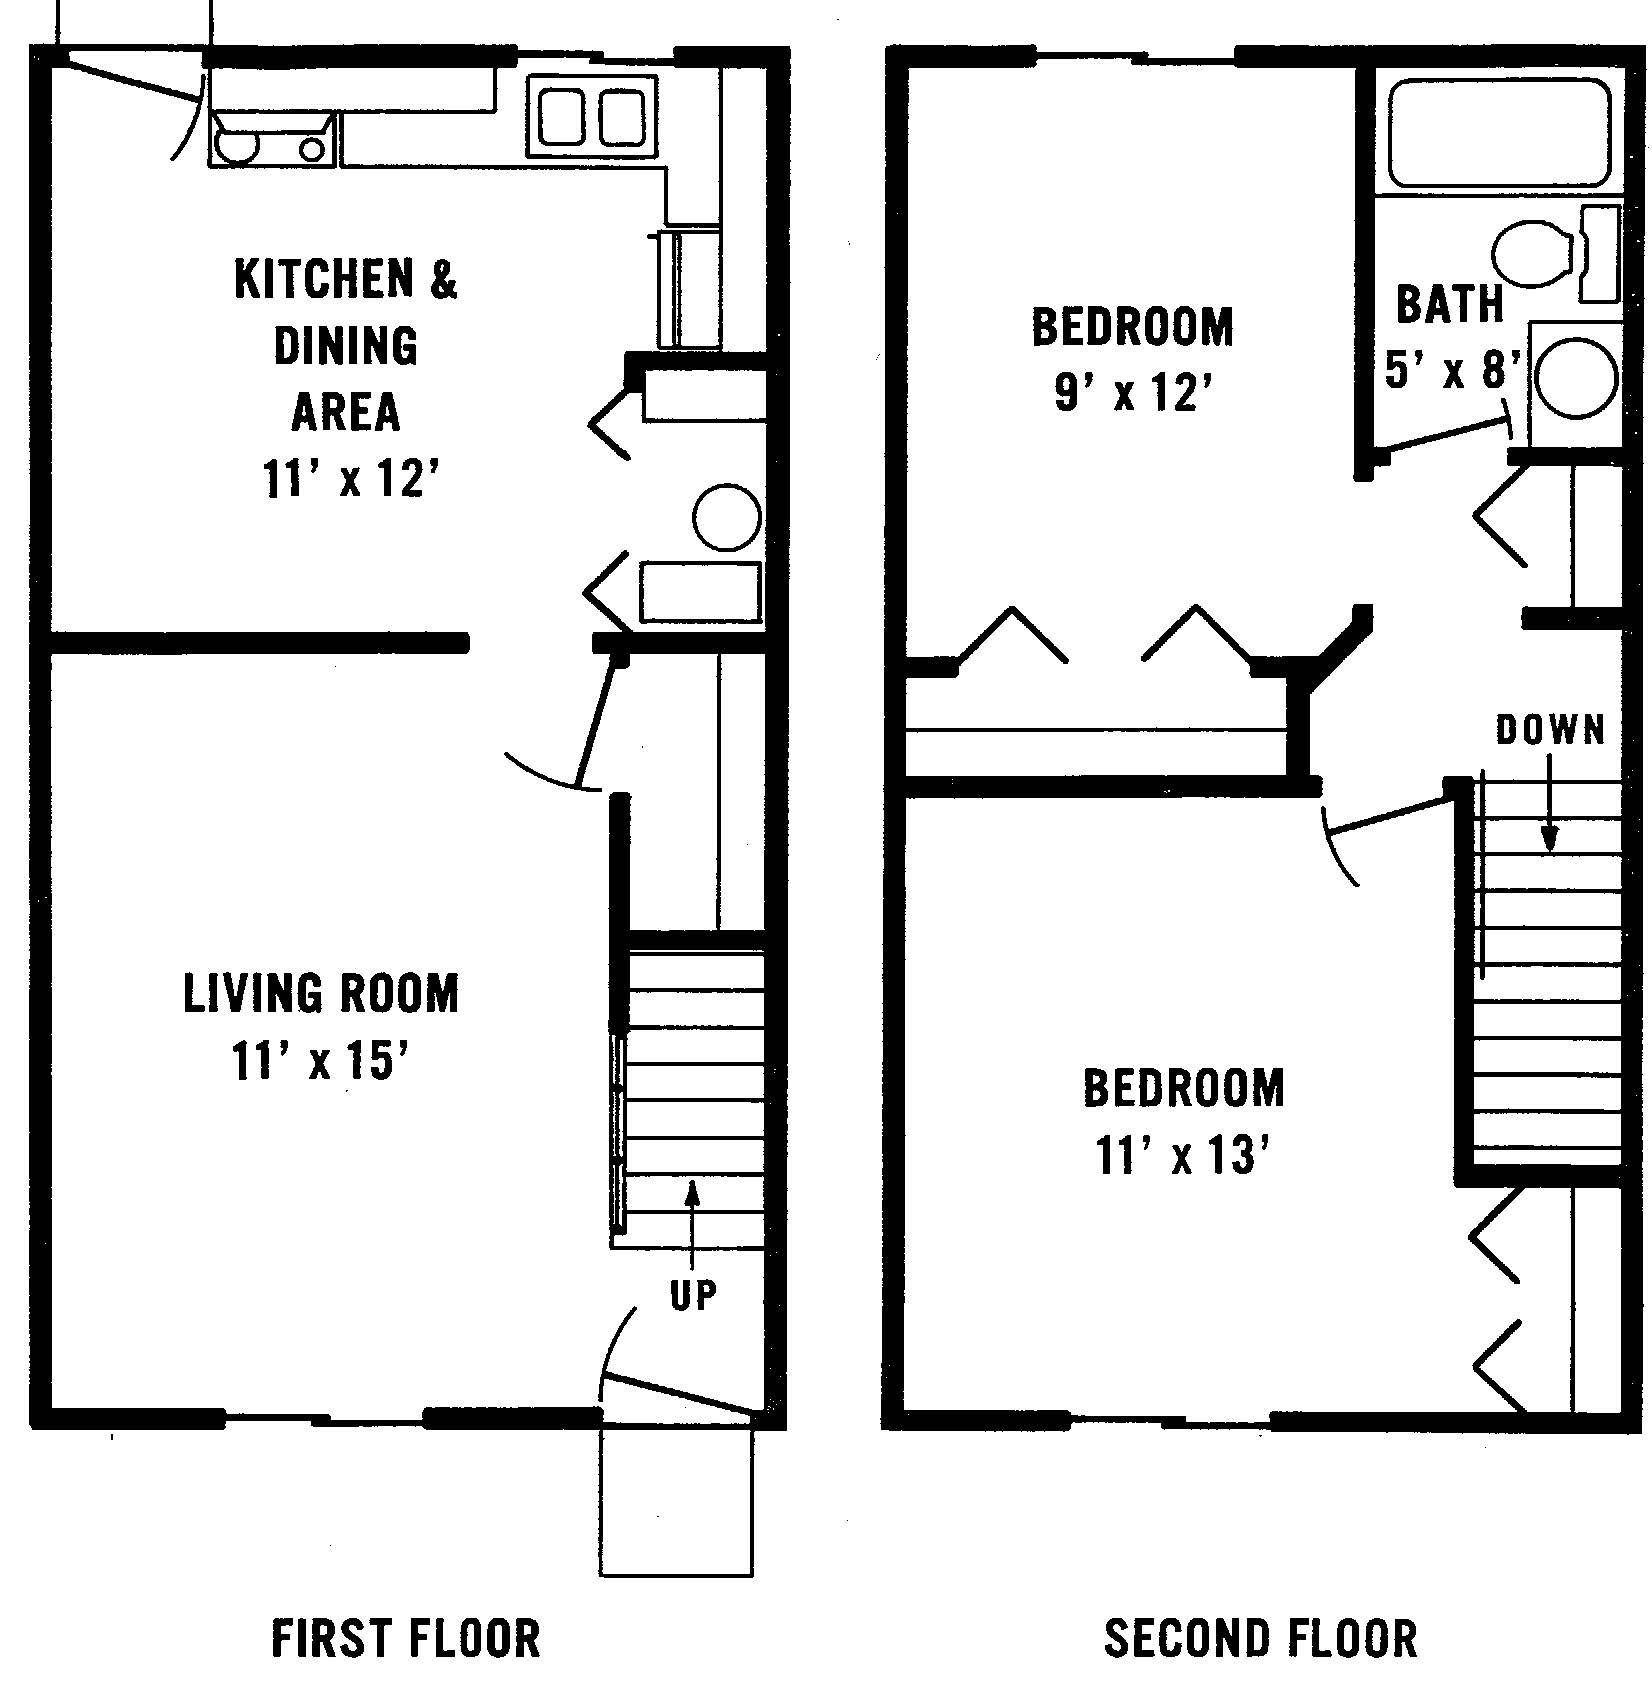 2 bedroom Barberton apartment floorplan